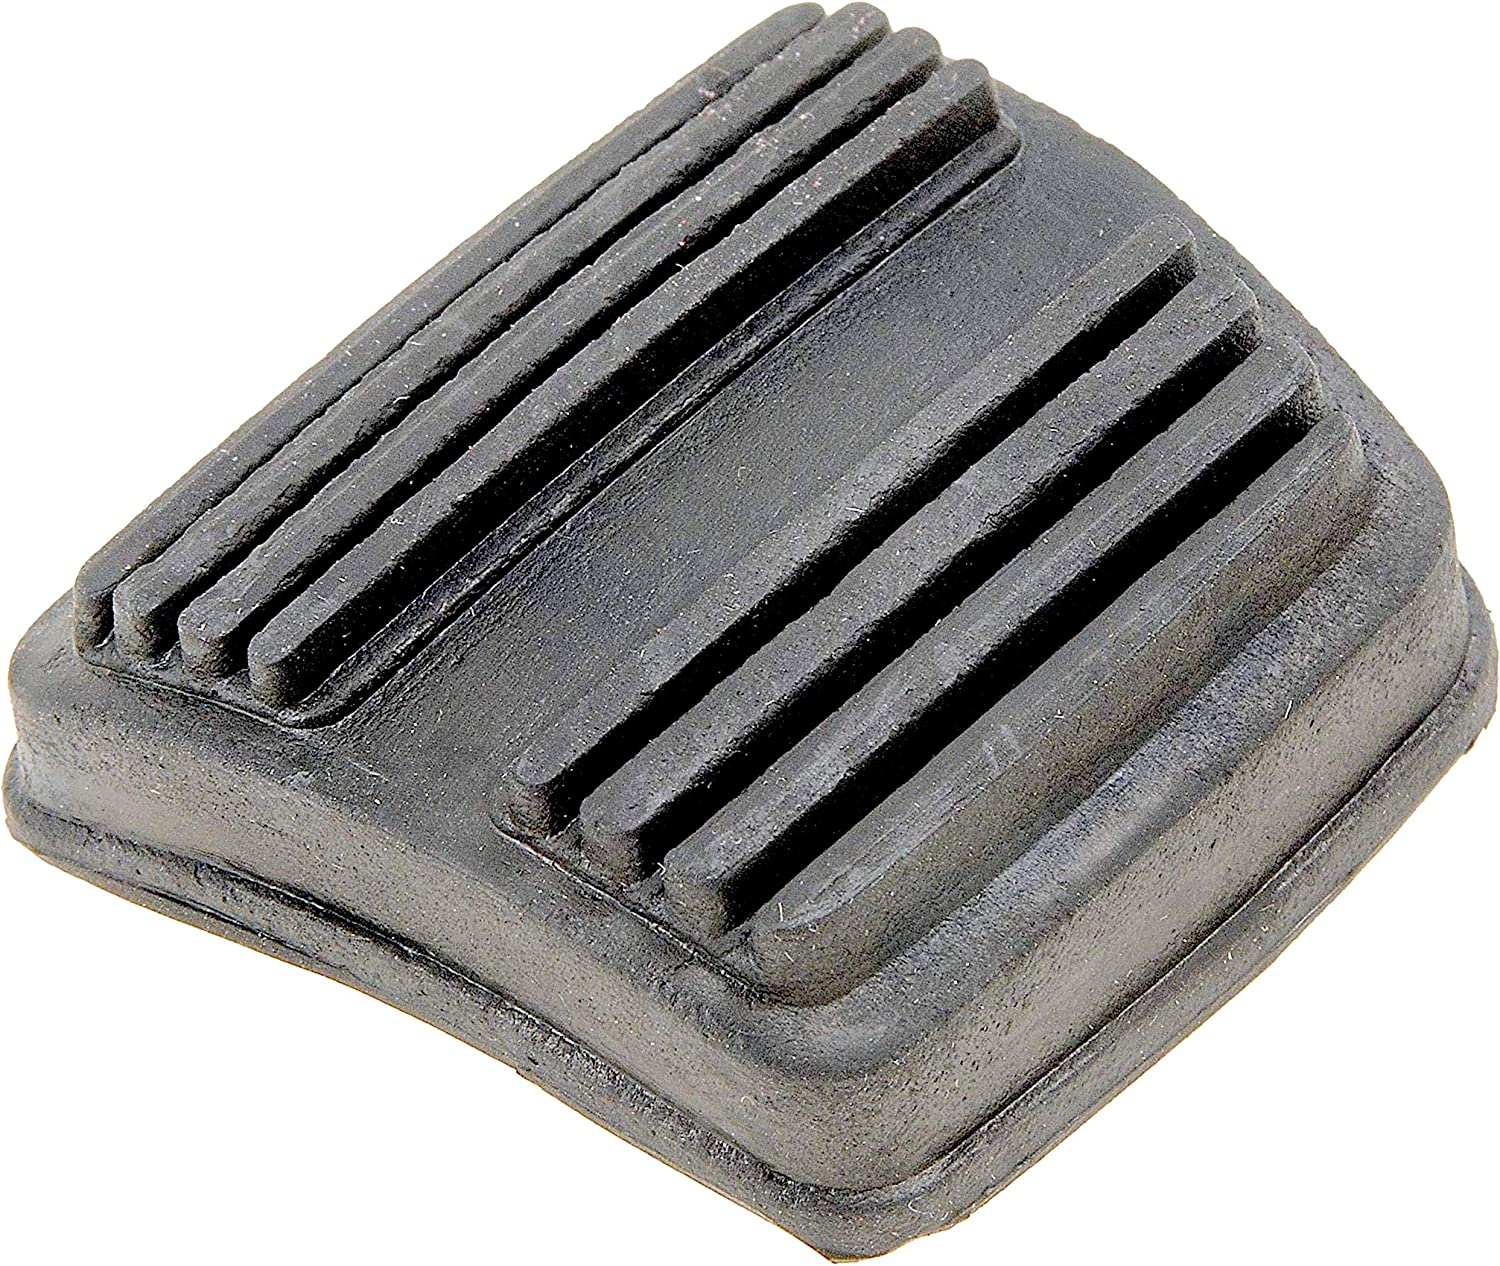 APDTY 31840 Replacement Rubber Parking Brake or Clutch Pedal Pad (1 Pad)